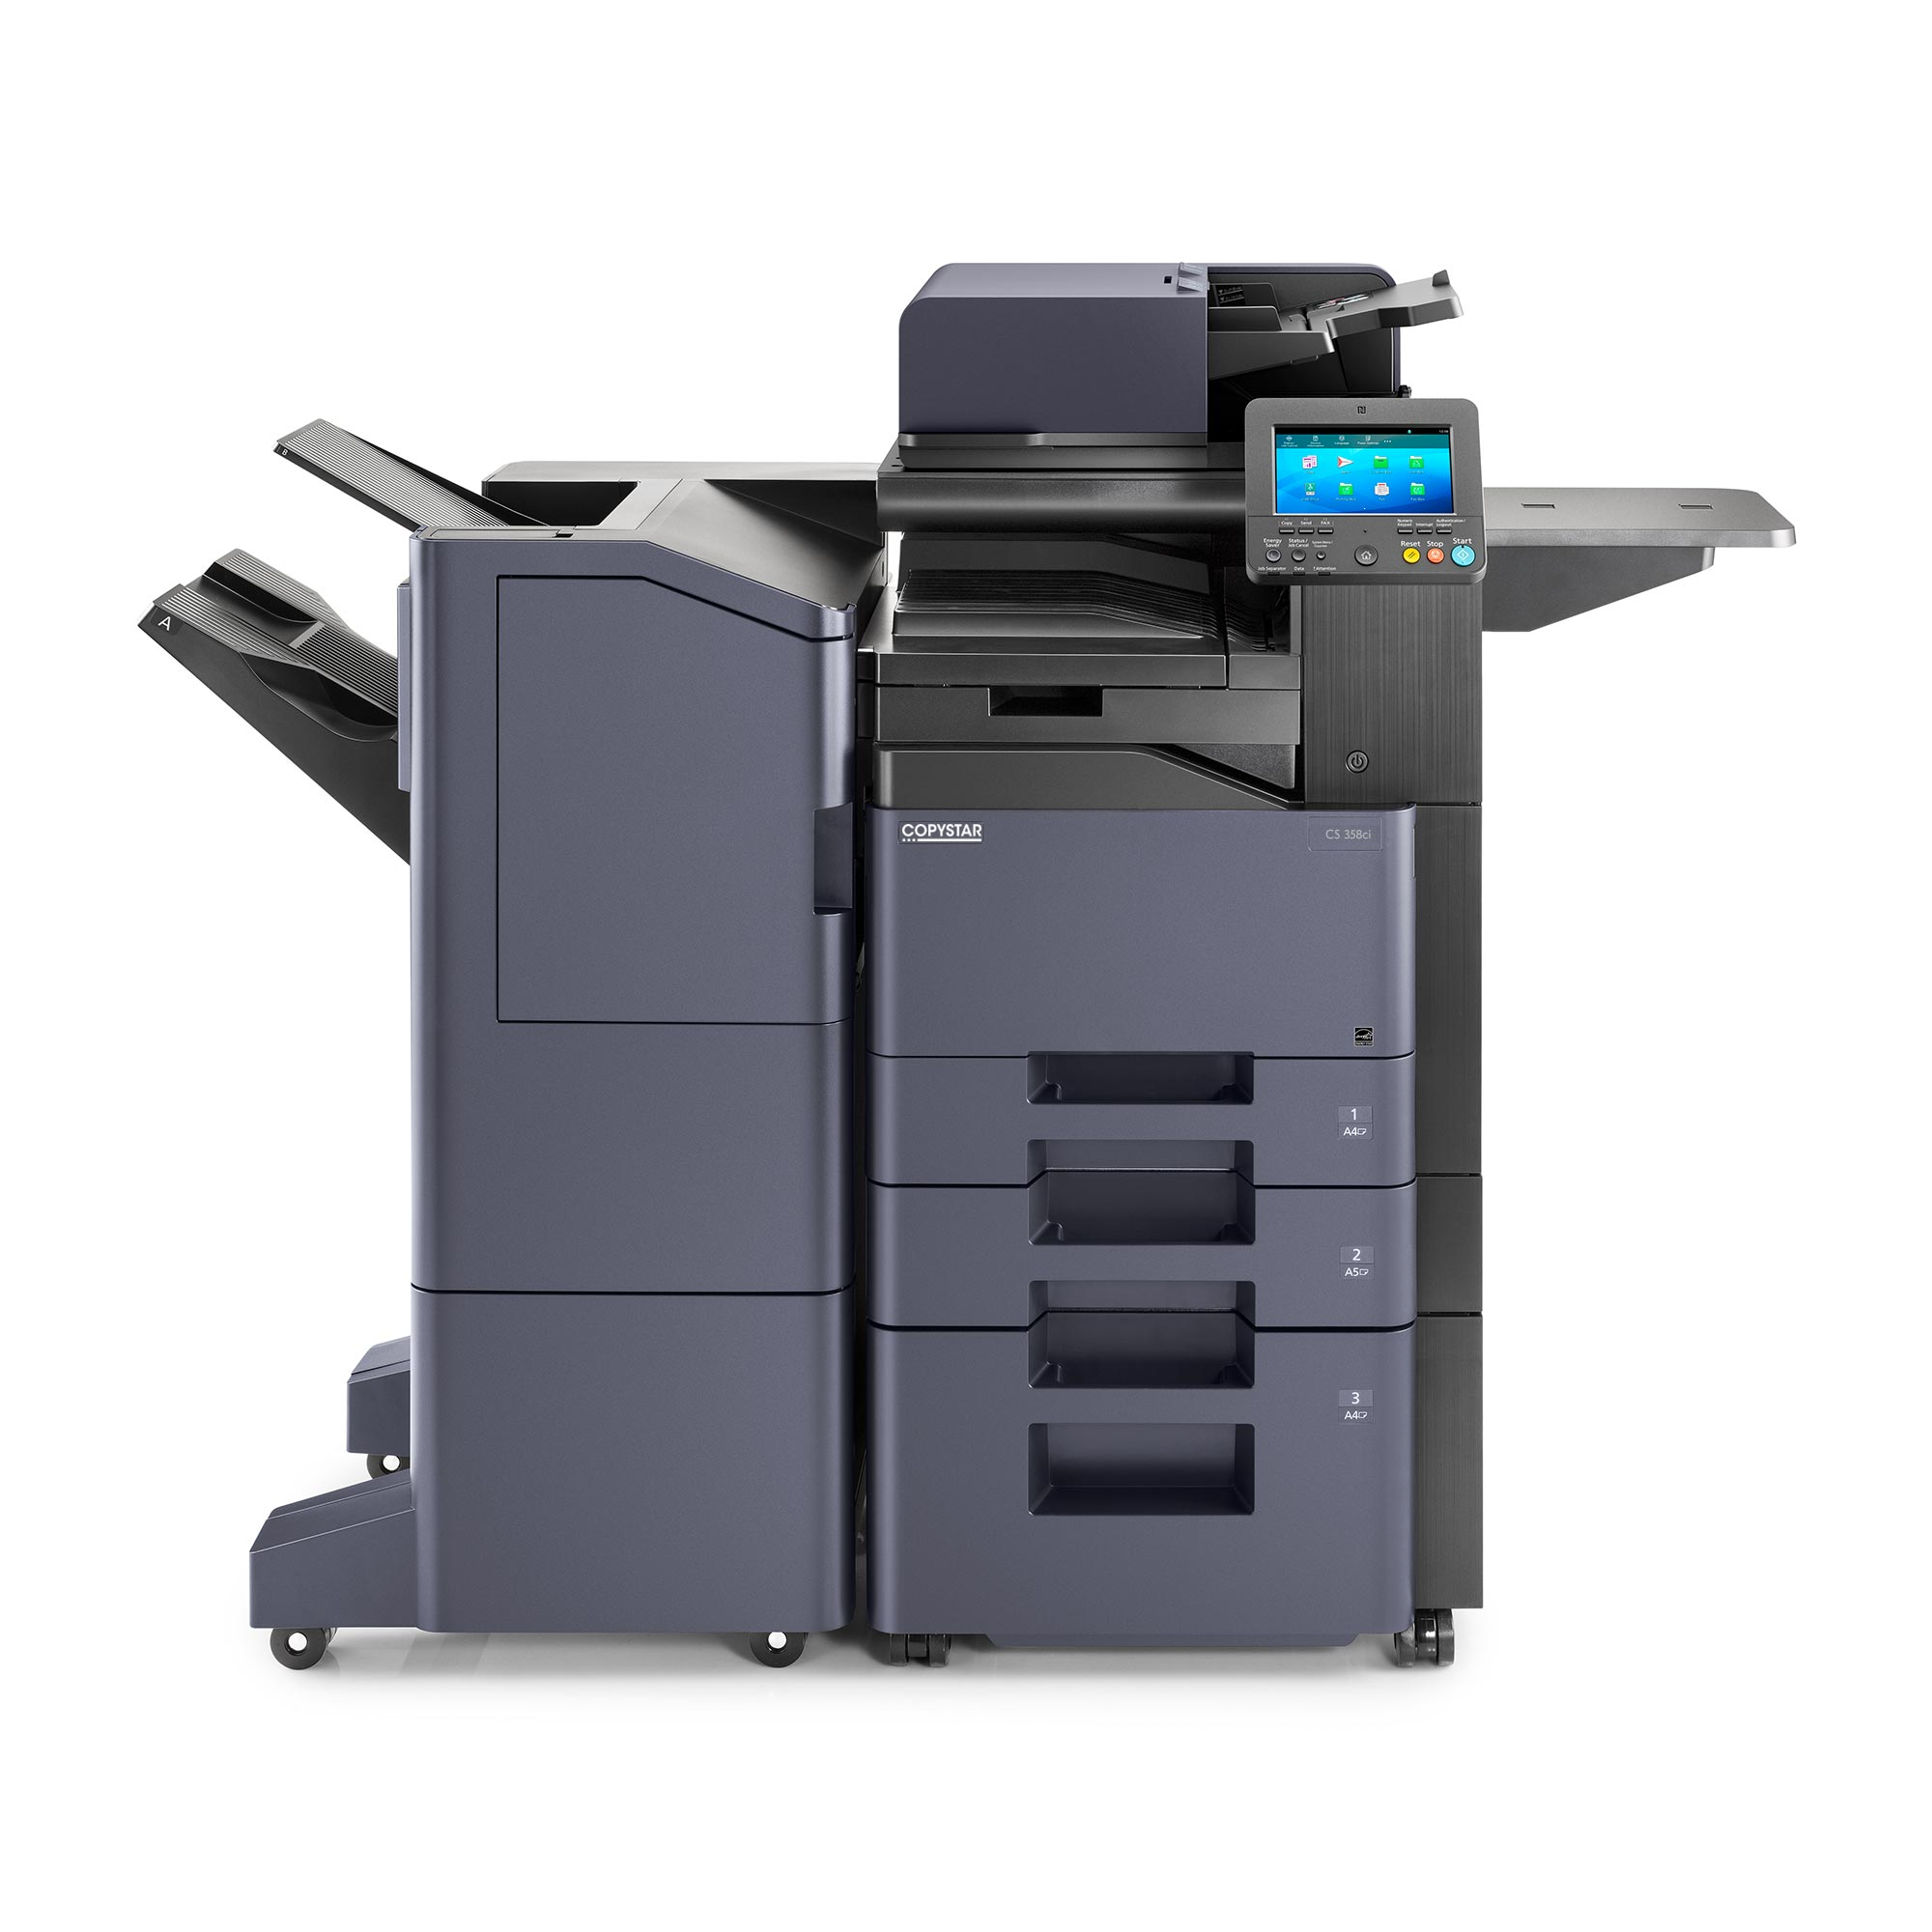 Kyocera CS_358ci Copier Rental Companies 55317, 55318, 55331, 55346